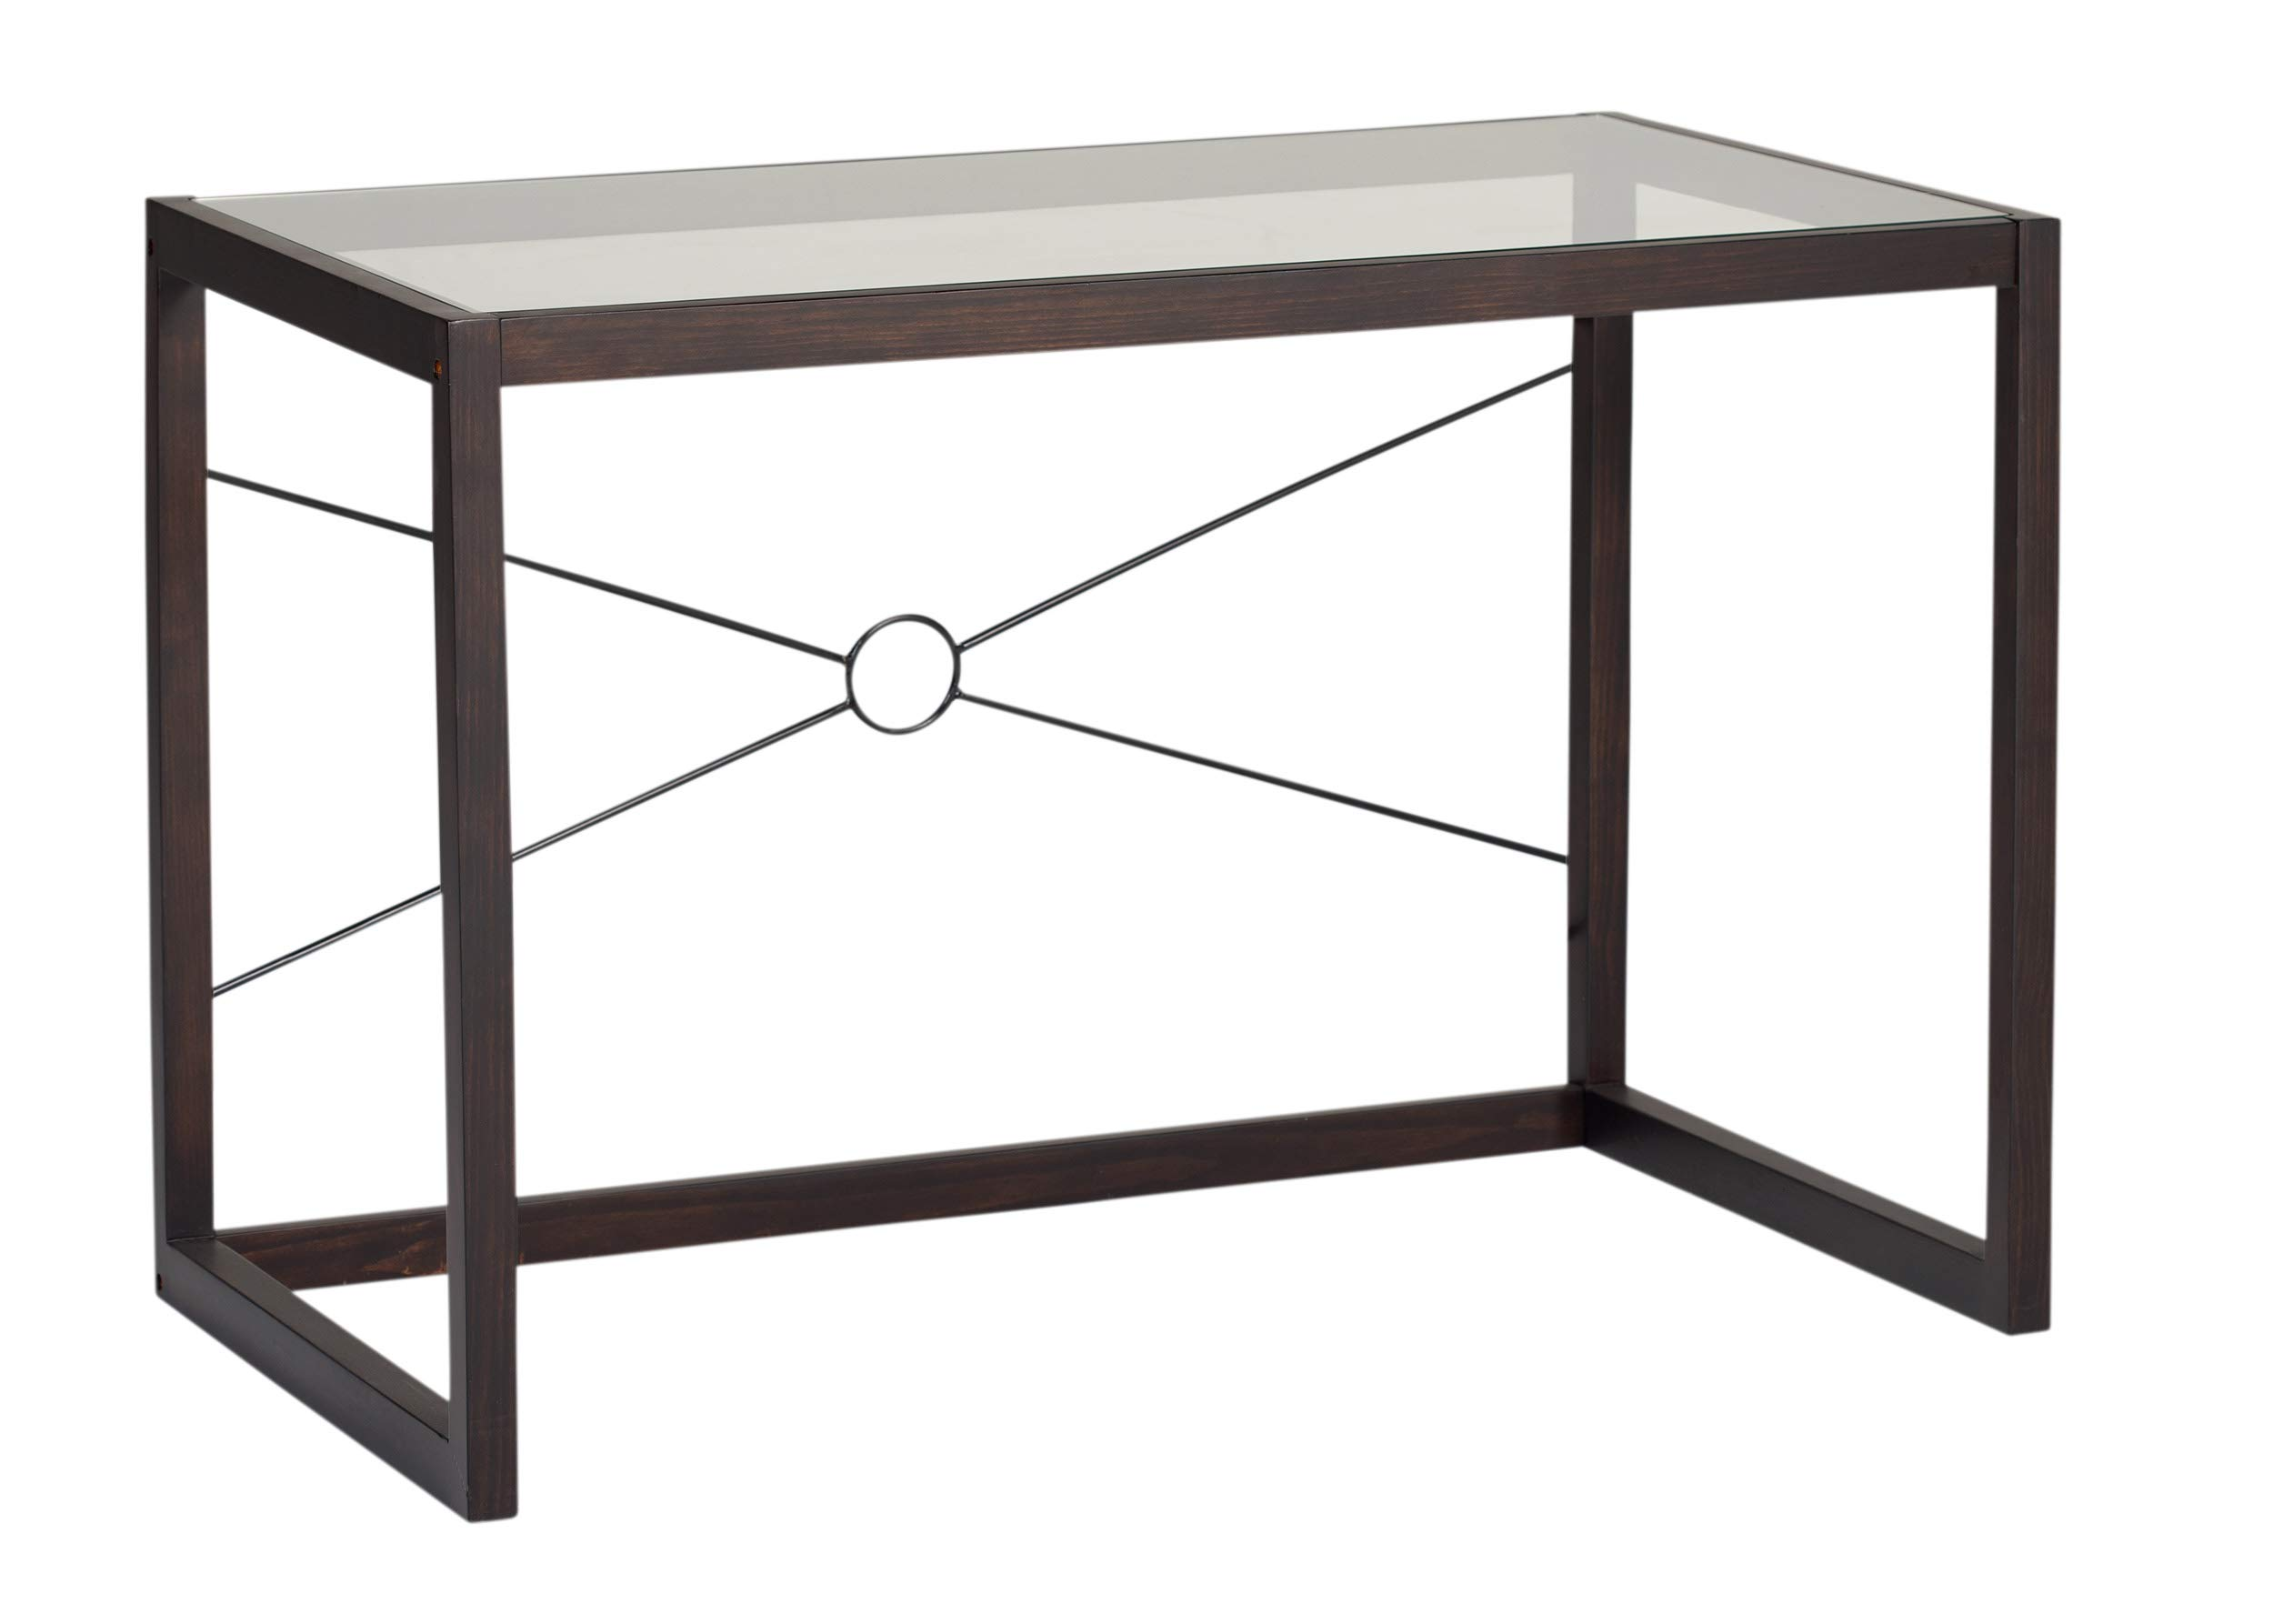 Studio Designs Home Office Newel 48''W Wood and Glass Writing Desk, Java/Clear Glass Finish by Studio Designs Home